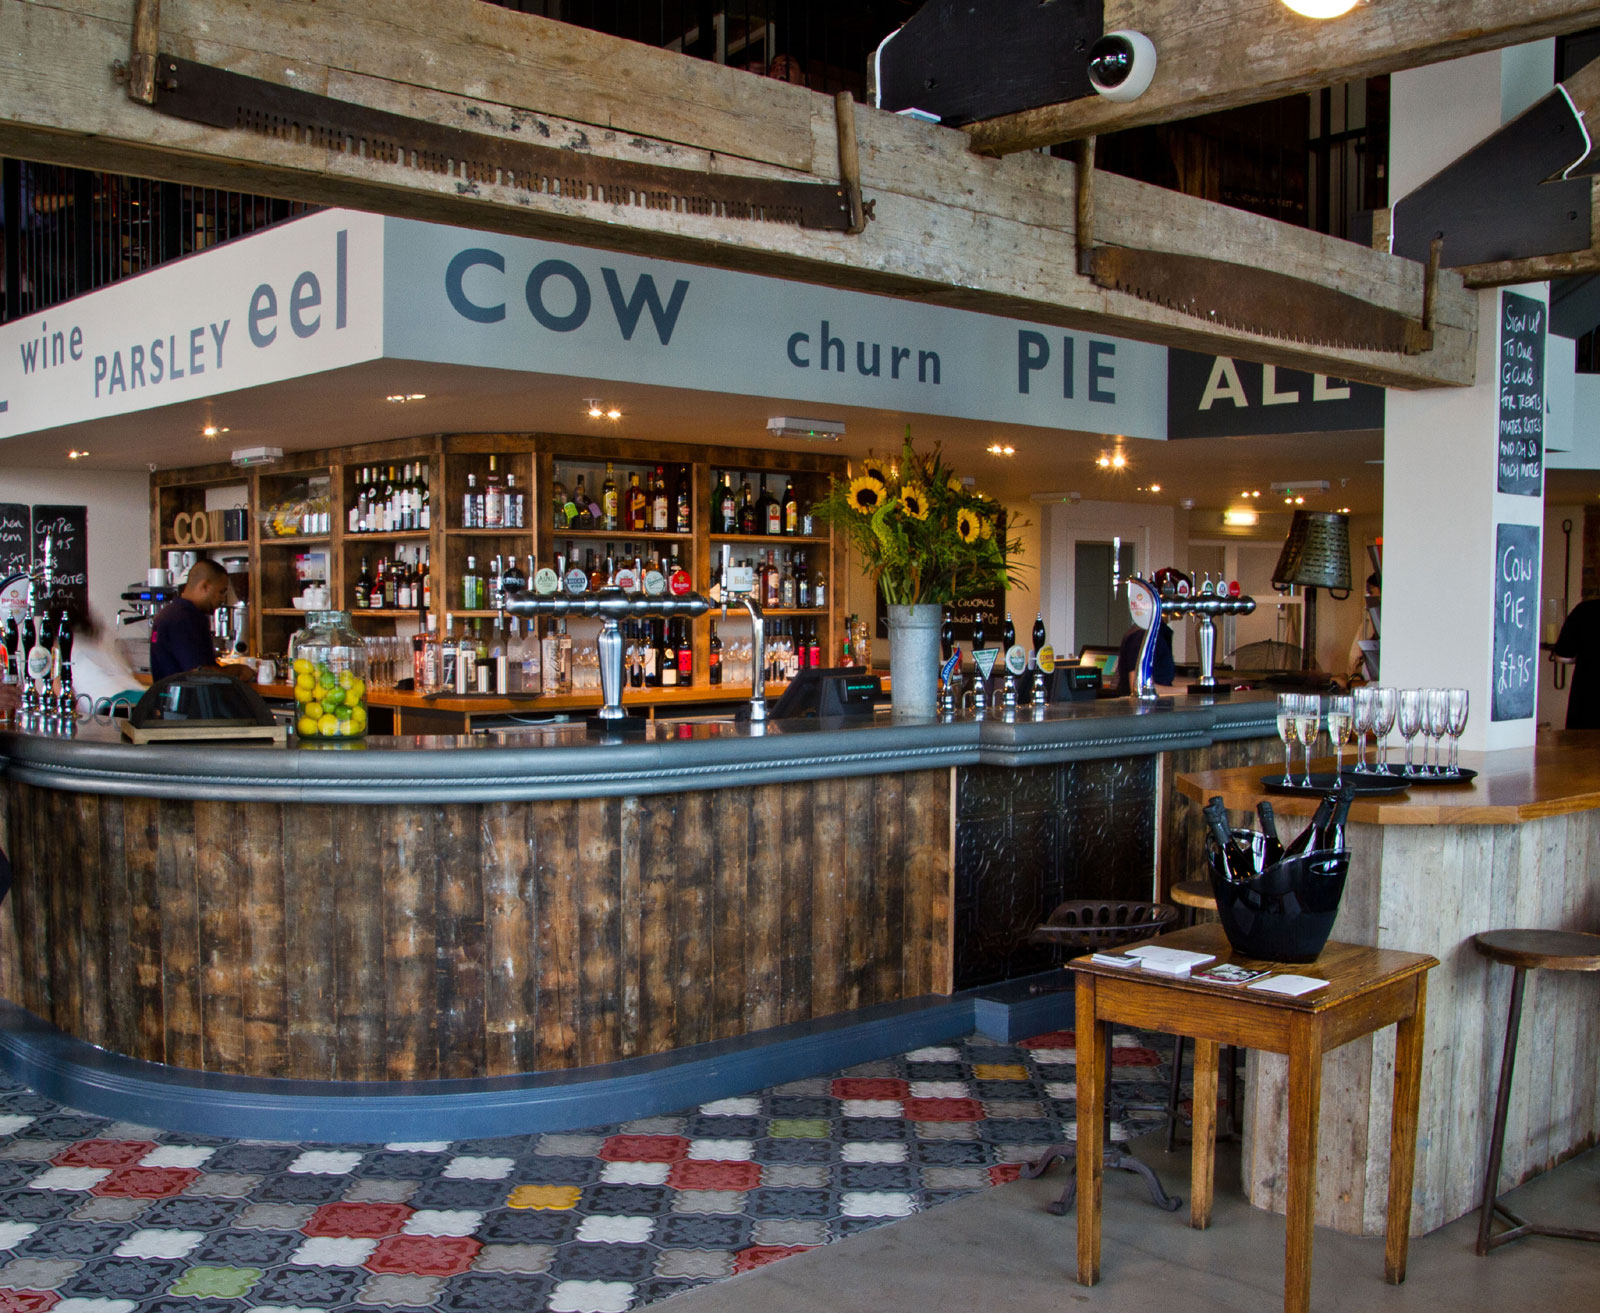 The Cow - Westfield - London